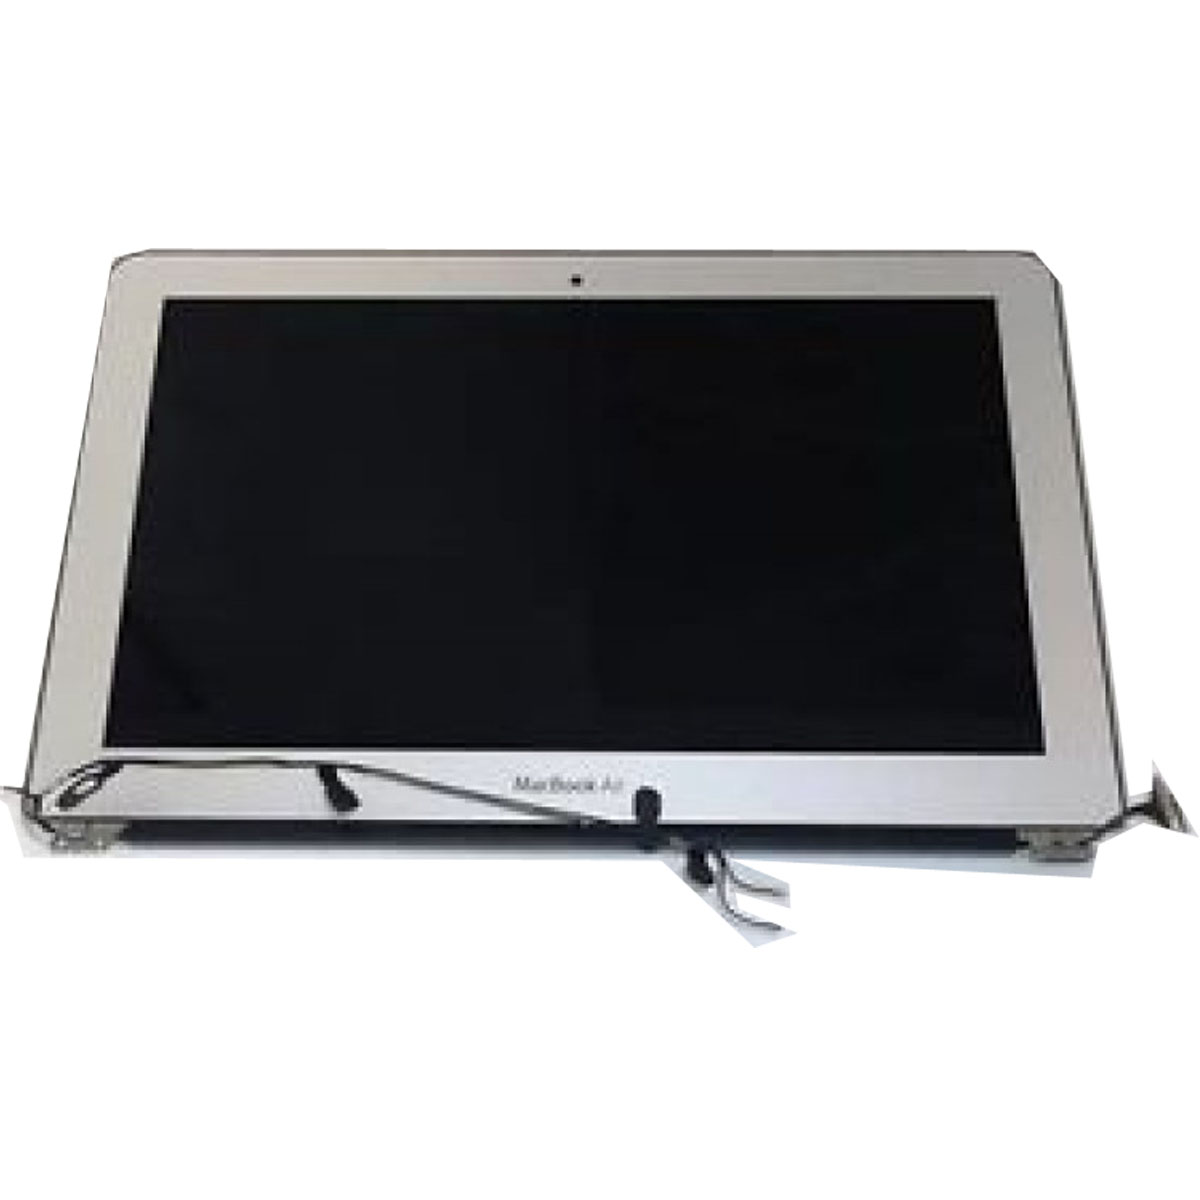 LCD LED Display Screen Assembly for Macbook Air 11